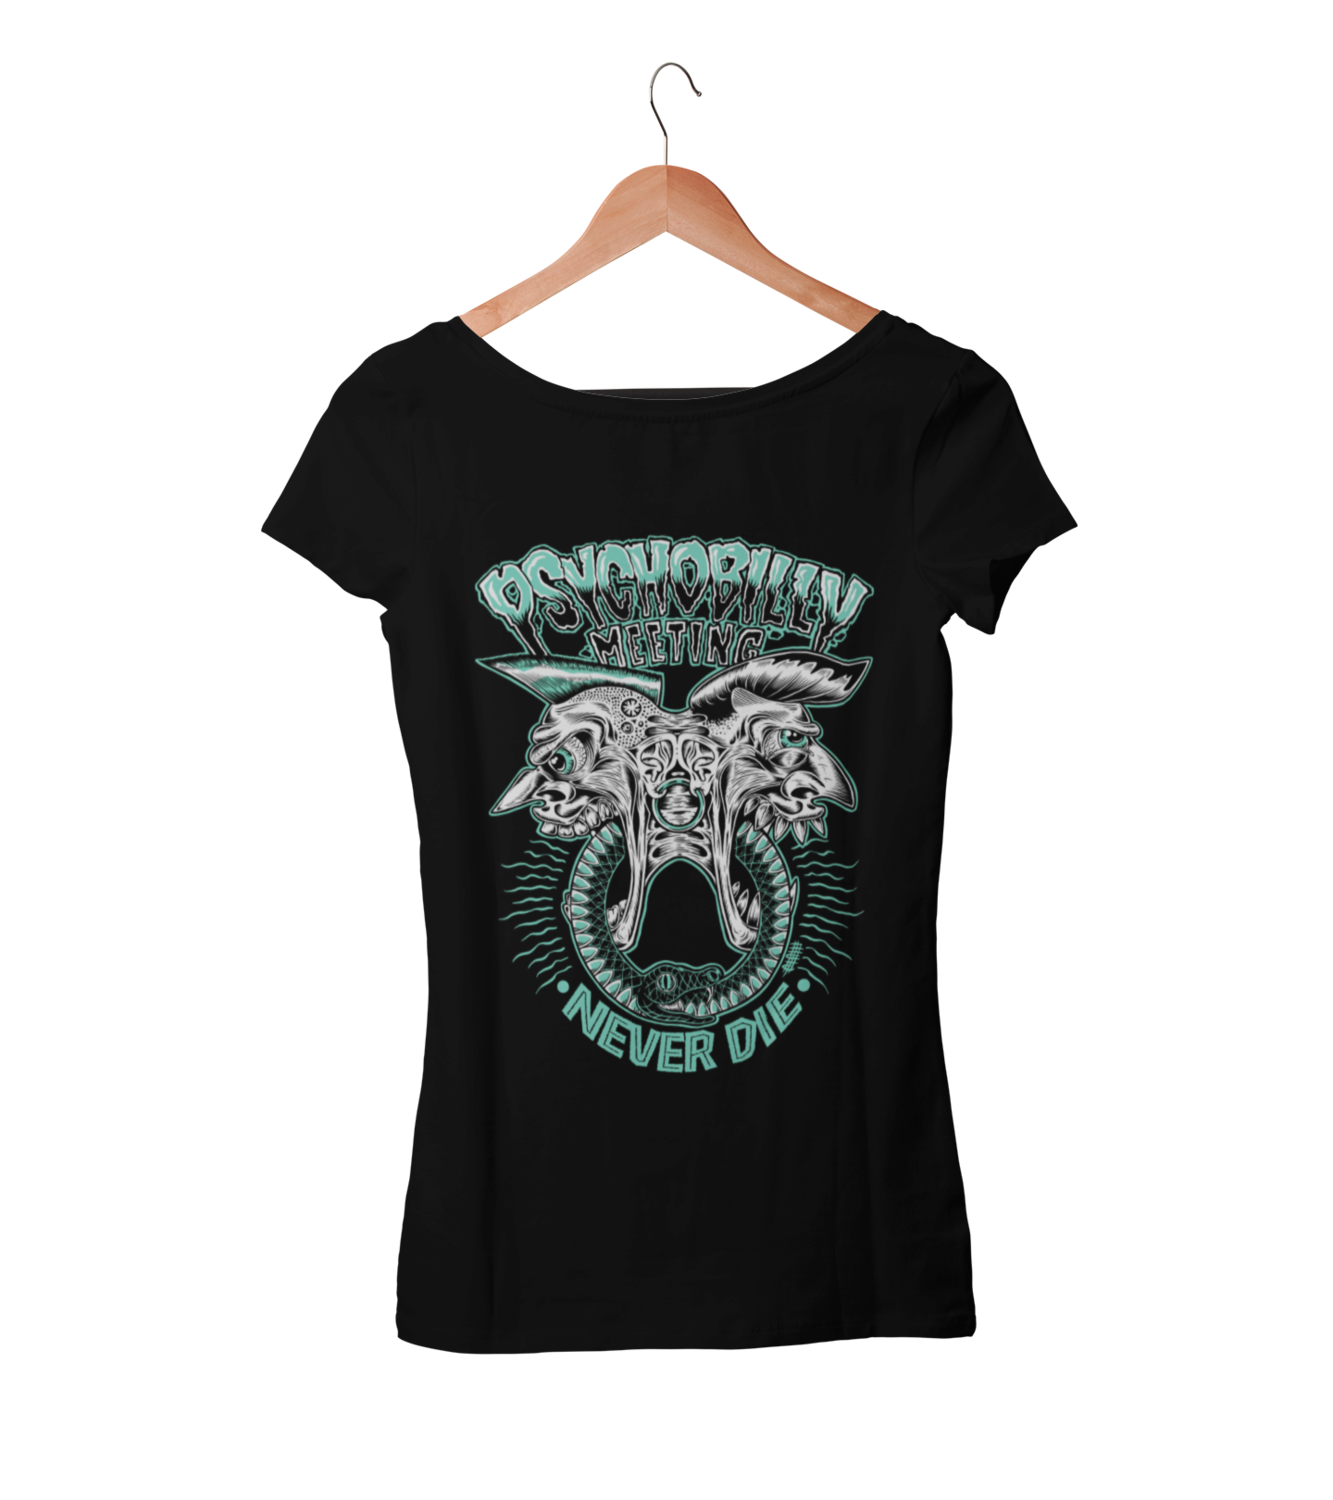 PSYCHOBILLY MEETING T-SHIRT WOMAN BY OLAFH